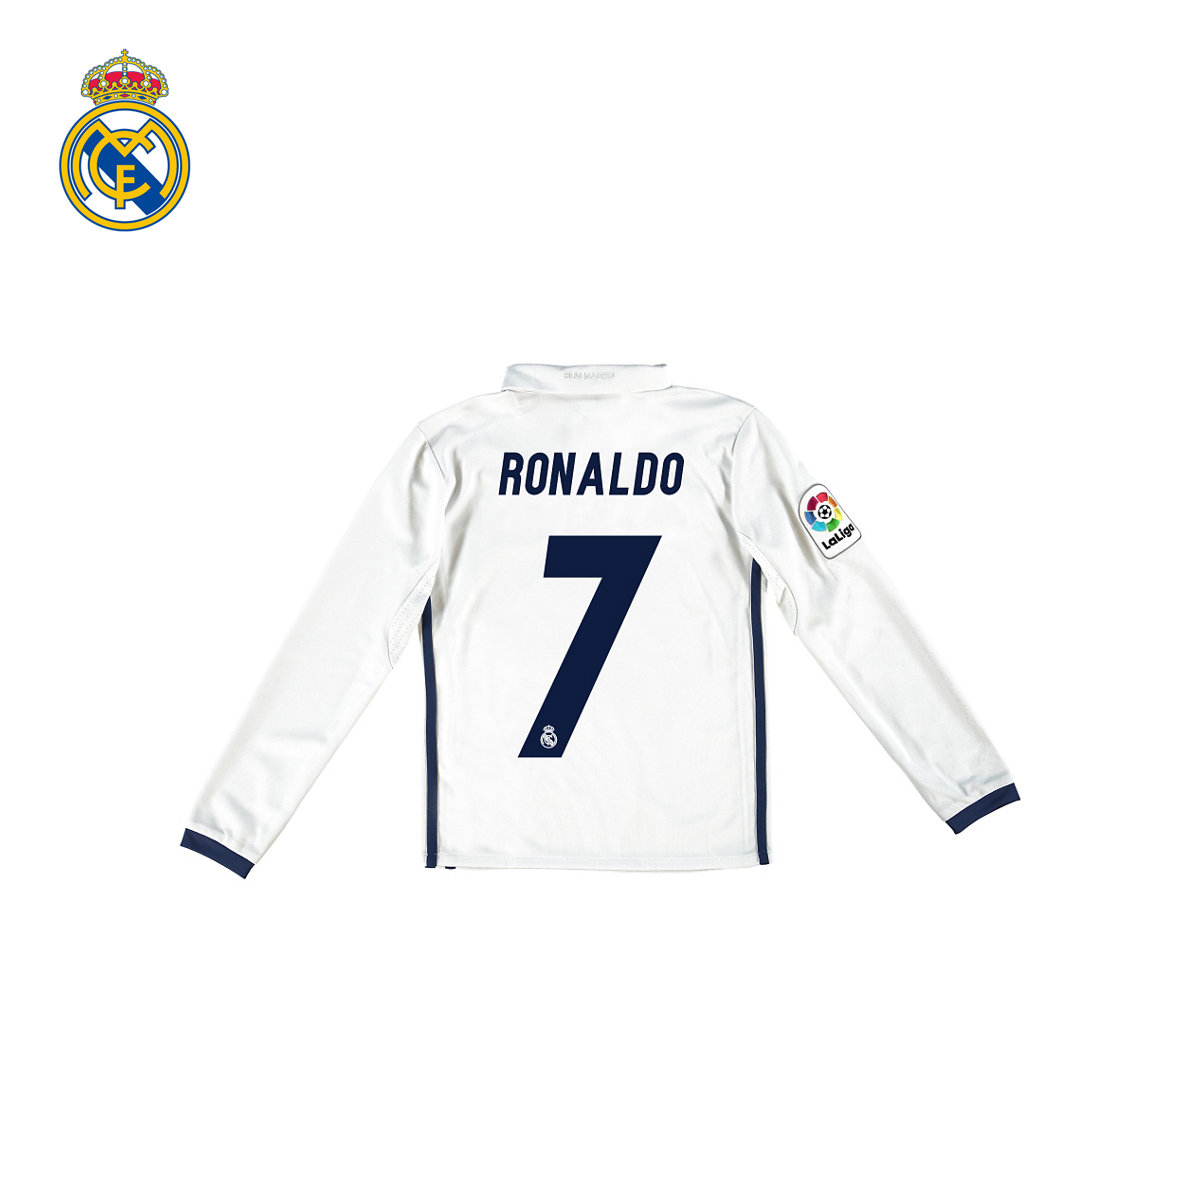 54f32af37c02e Get Quotations ·  Youth  real madrid real madrid c lo ronaldo 16 17 season  home jersey